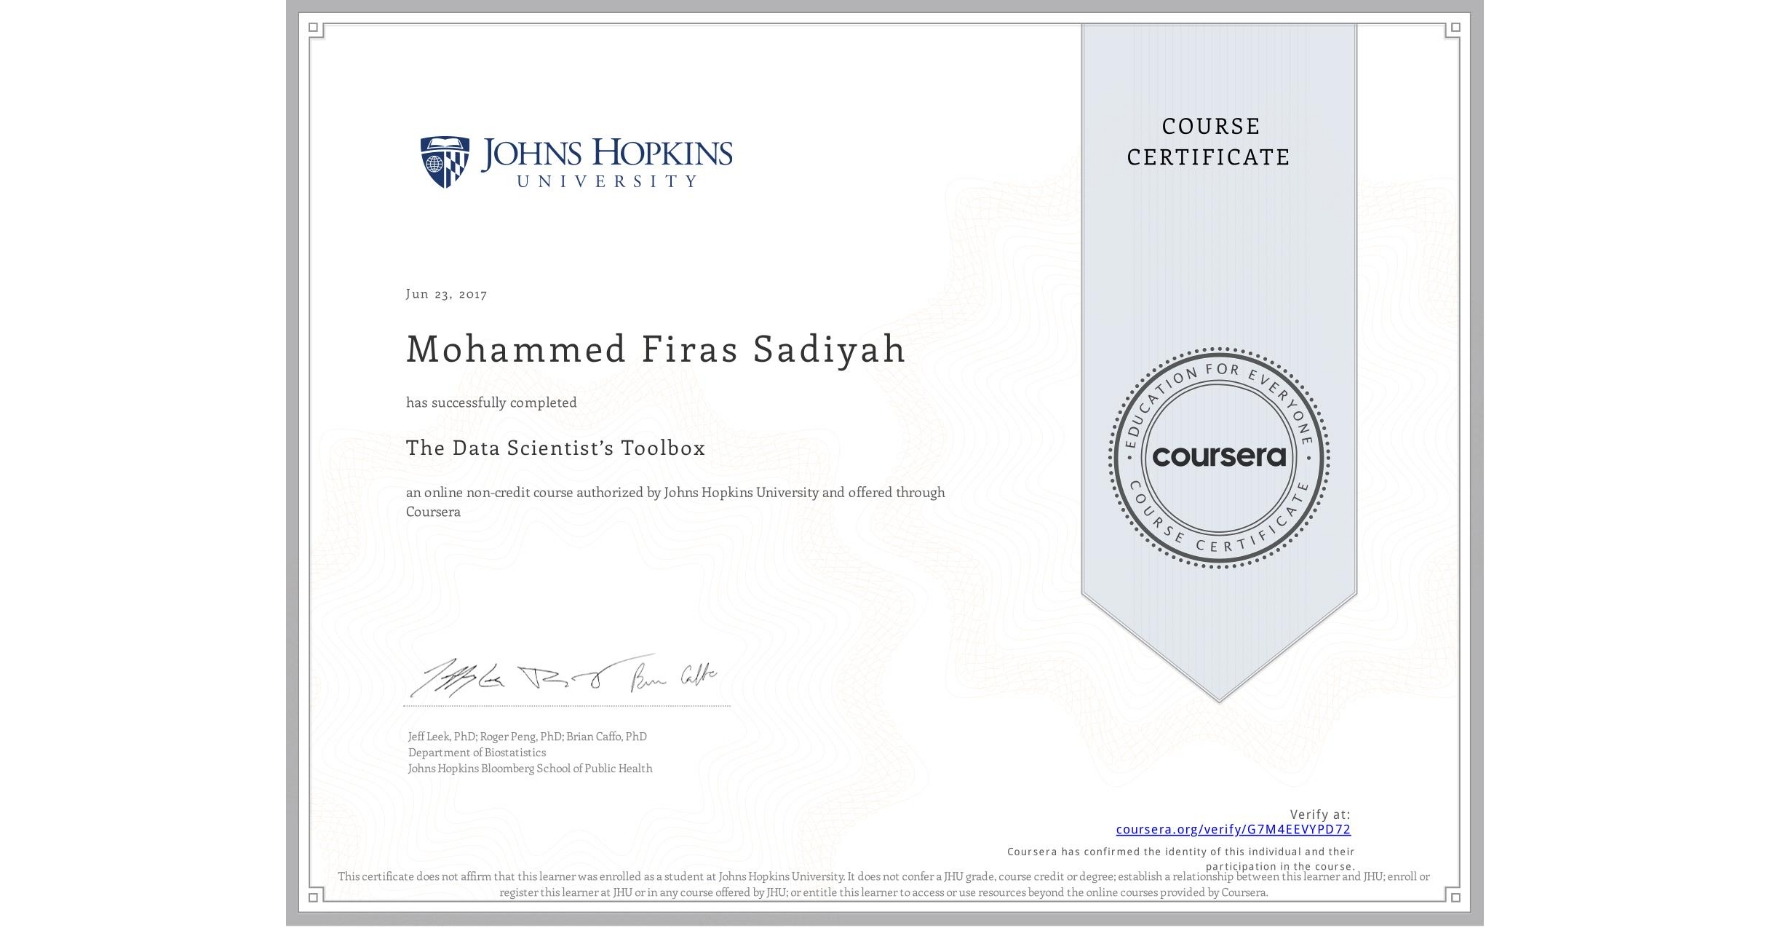 View certificate for Mohammed Firas  Sadiyah, The Data Scientist's Toolbox, an online non-credit course authorized by Johns Hopkins University and offered through Coursera